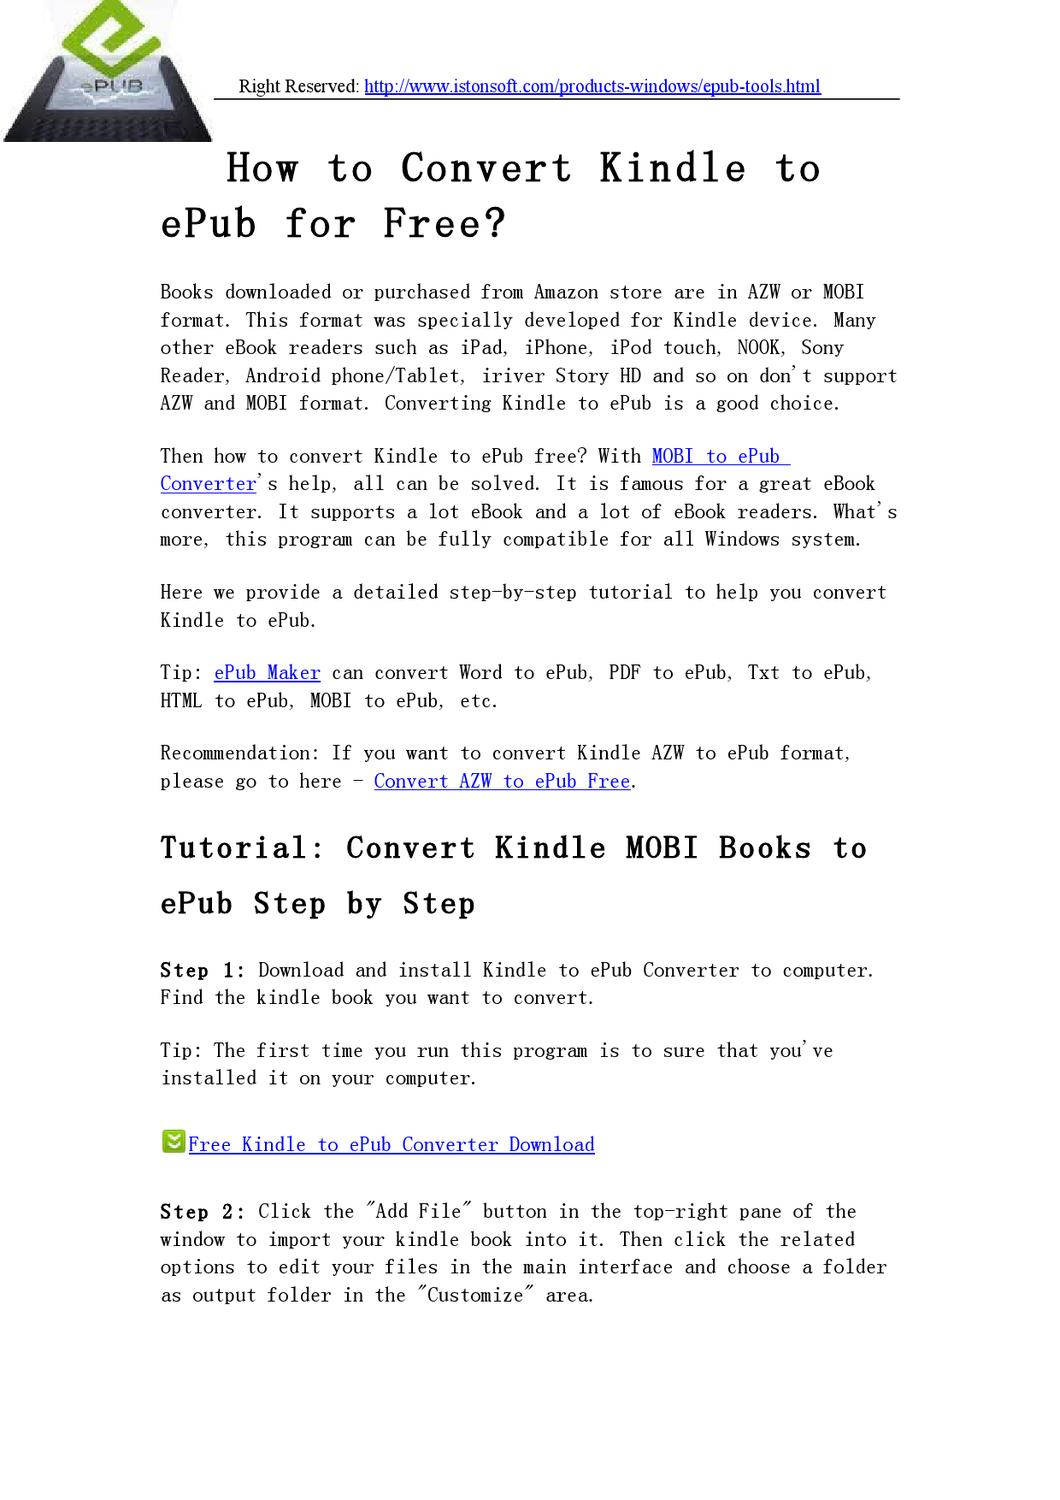 How to Convert Kindle to ePub Free - Converting Kindle Books